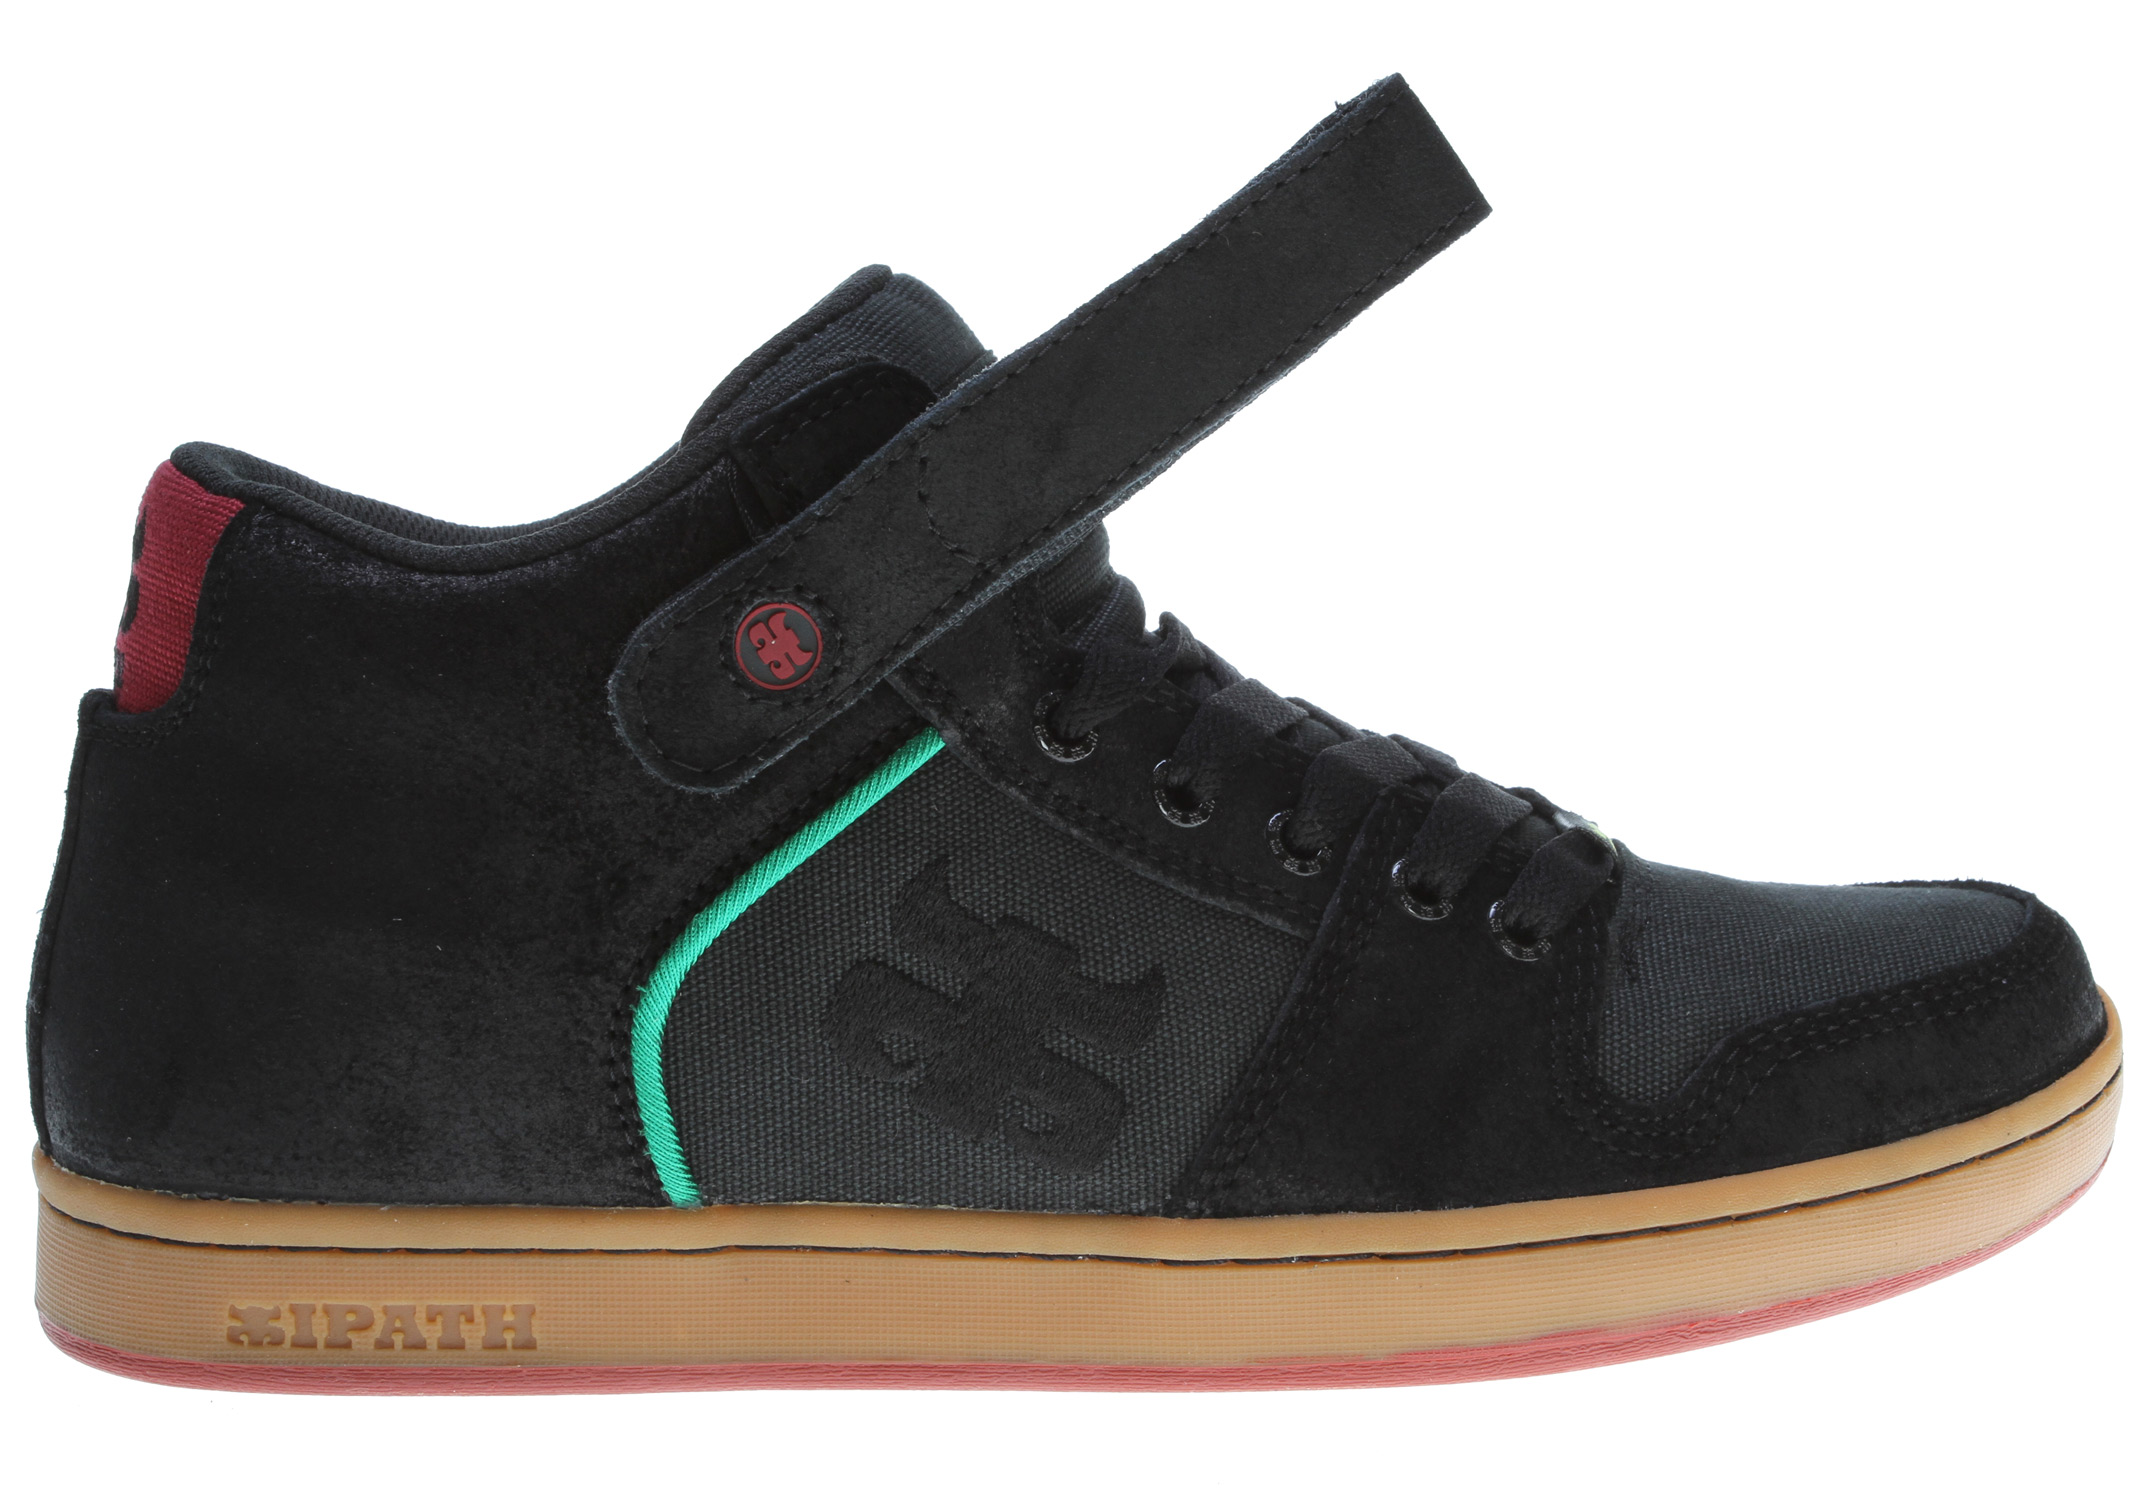 Skateboard The Grasshopper, an Ipath original, is a true skate staple. Classic lines, on a basic cupsole with a strap for extra ankle support, this shoe has it all. Complete with refined, slimmer upper proportions and a thinner outsole, the Grasshopper is ready for anything. - $55.95